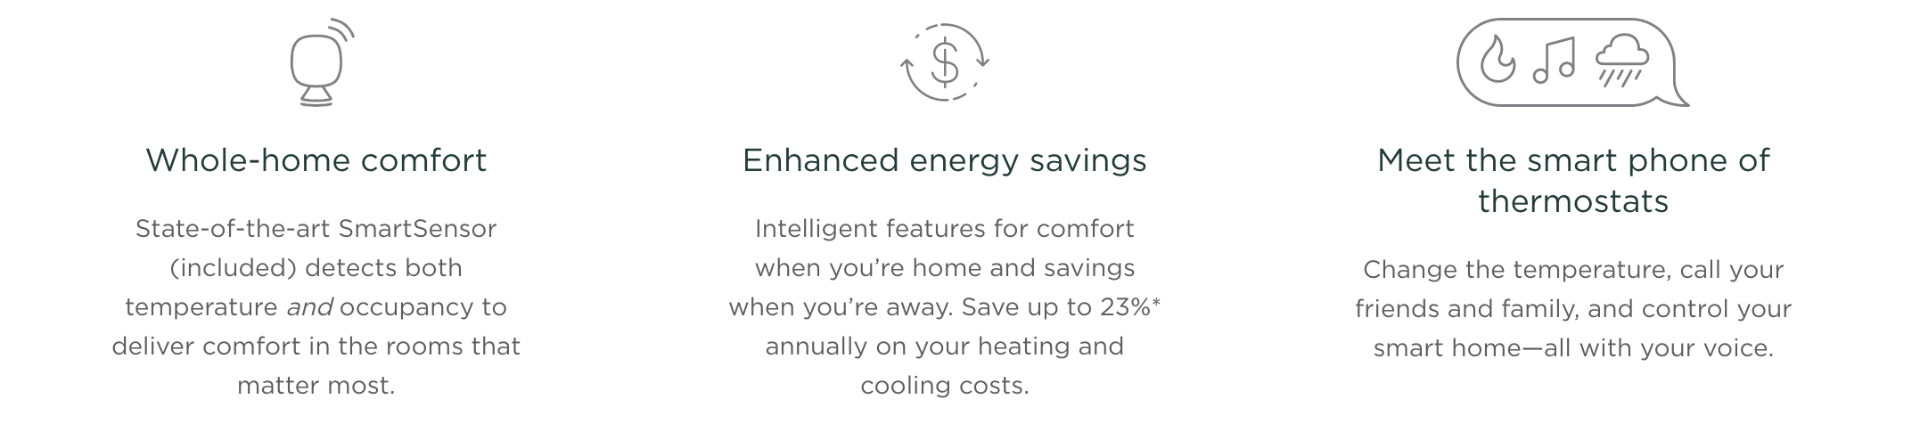 ecobee Smartthermostat Highlights Banner